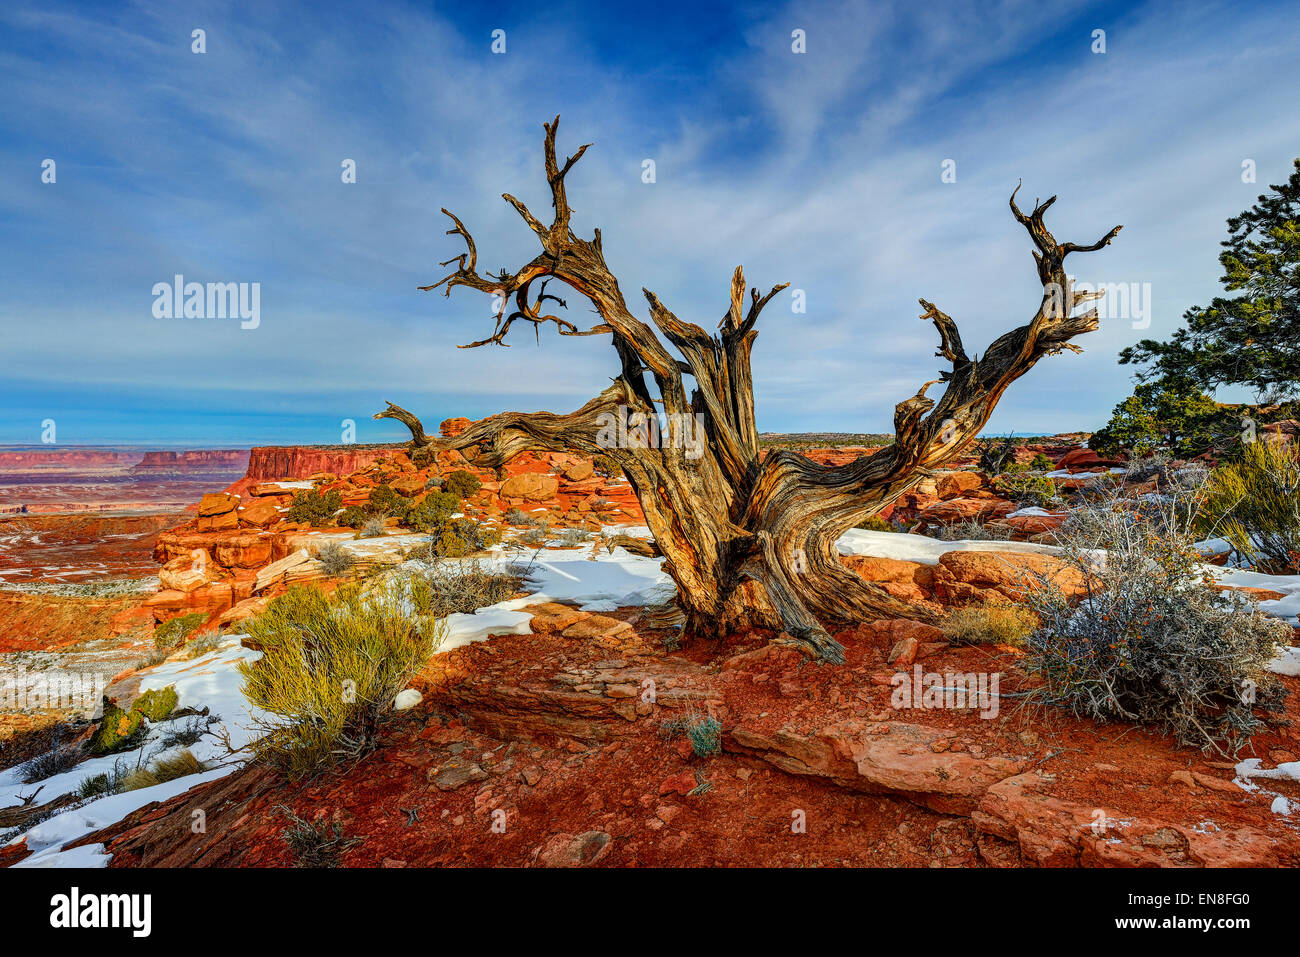 'old friend', island in the sky, ut - Stock Image